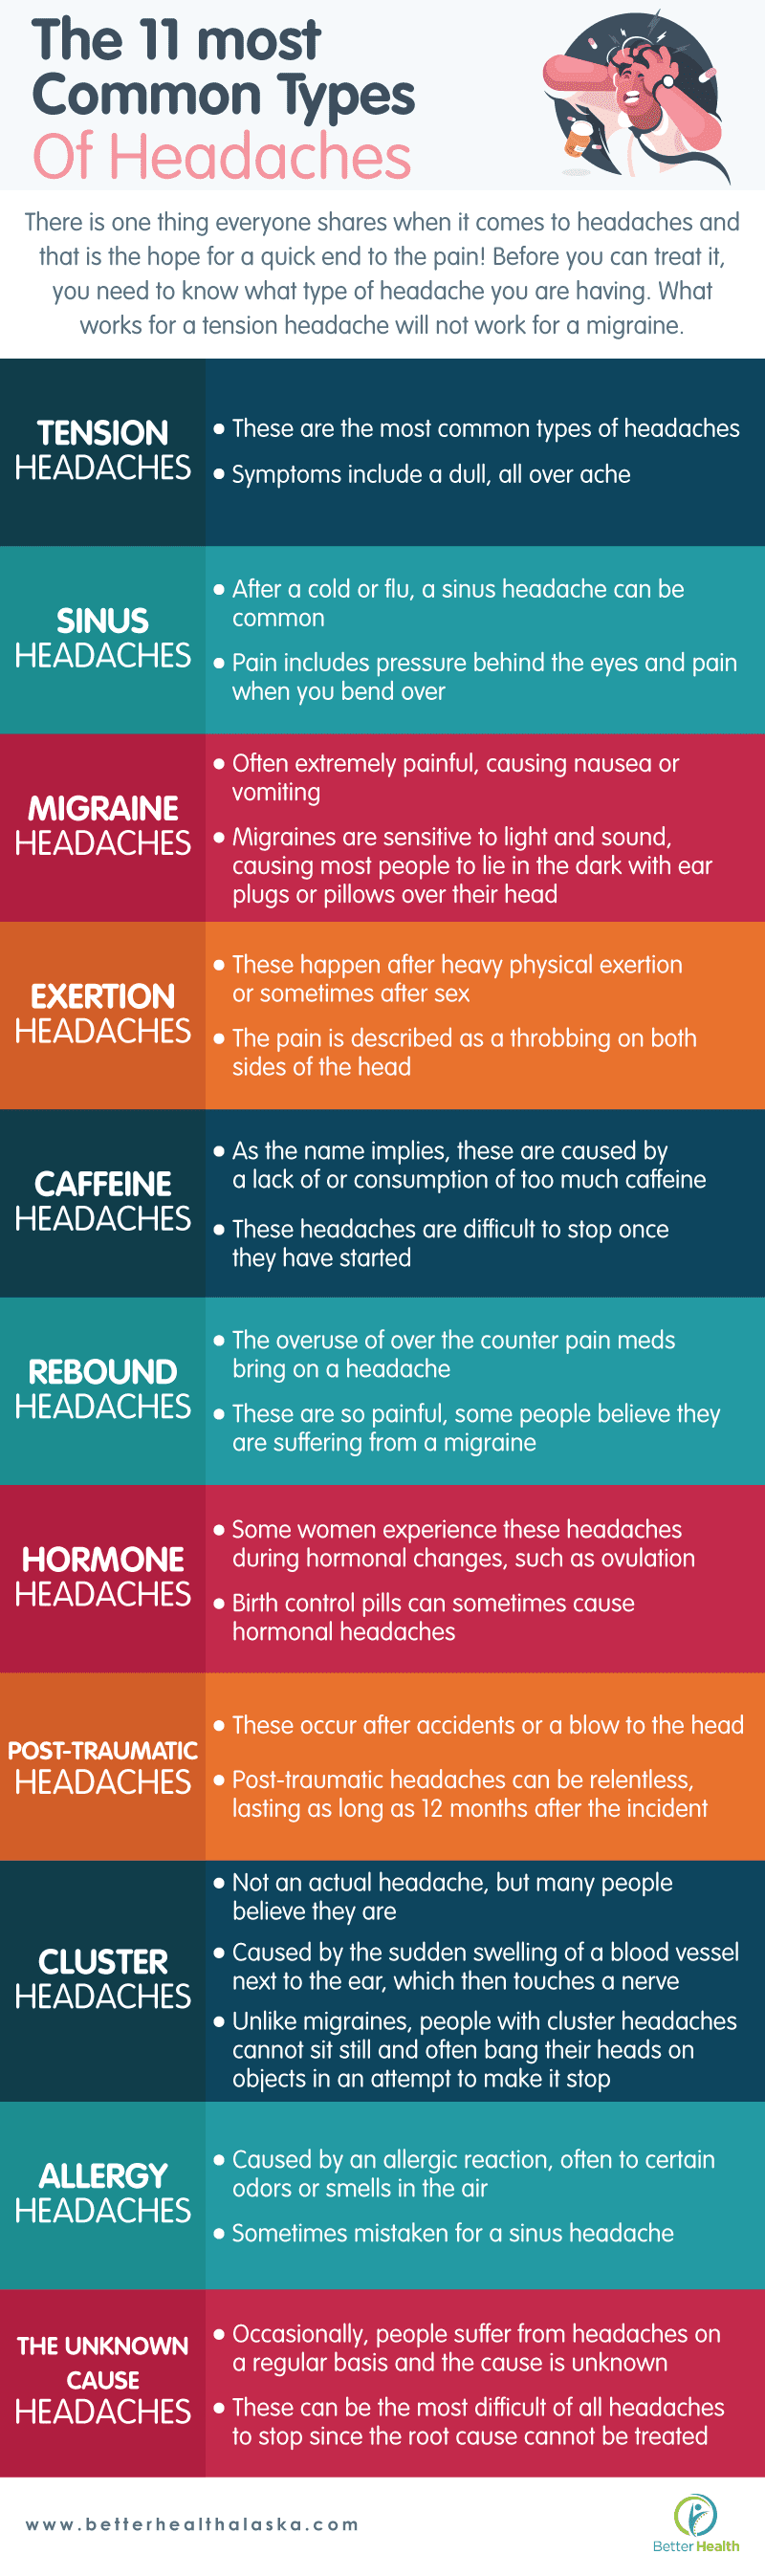 11 Most Common Types of Headaches Infographic